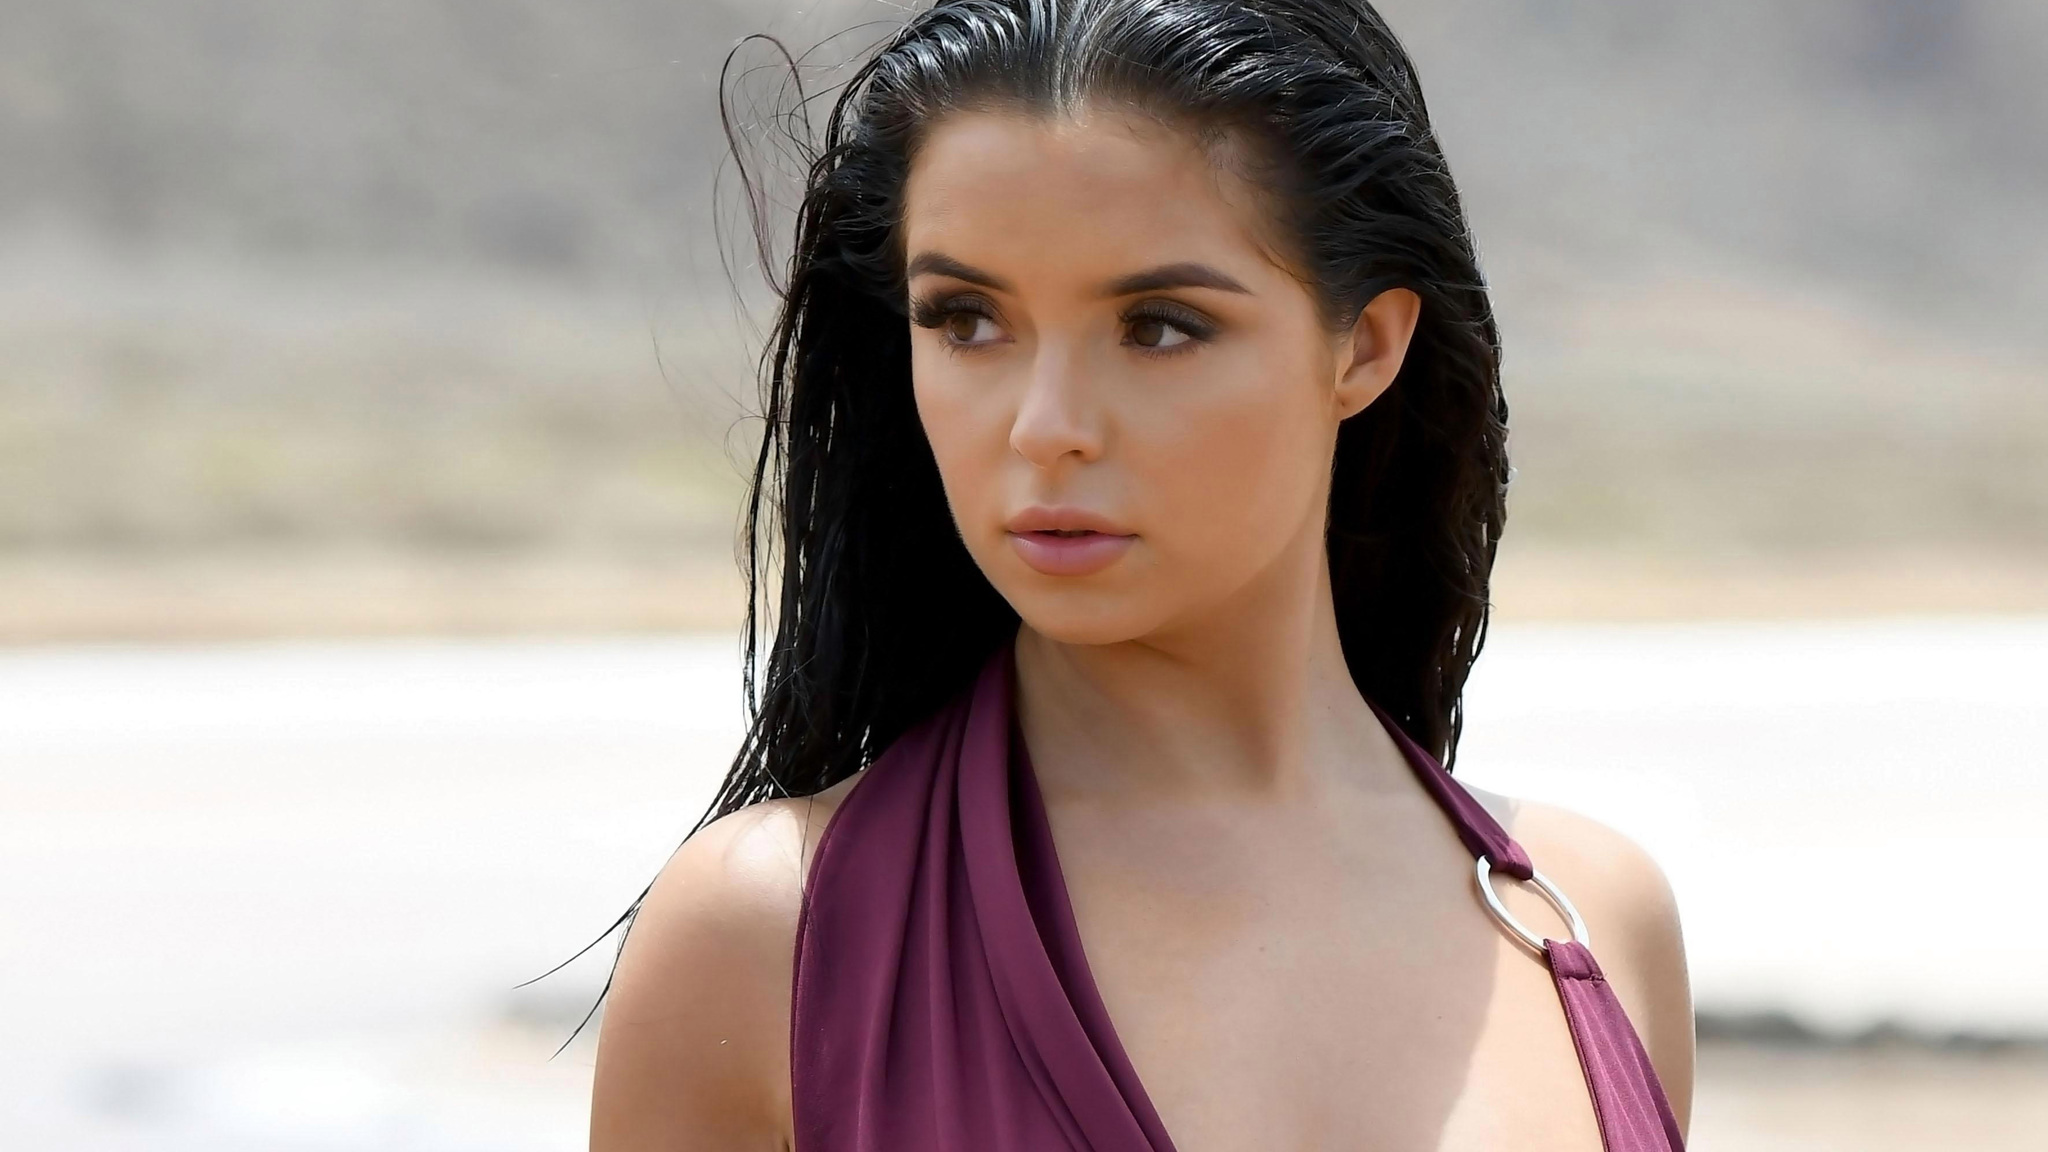 demi rose desktop wallpaper 66726